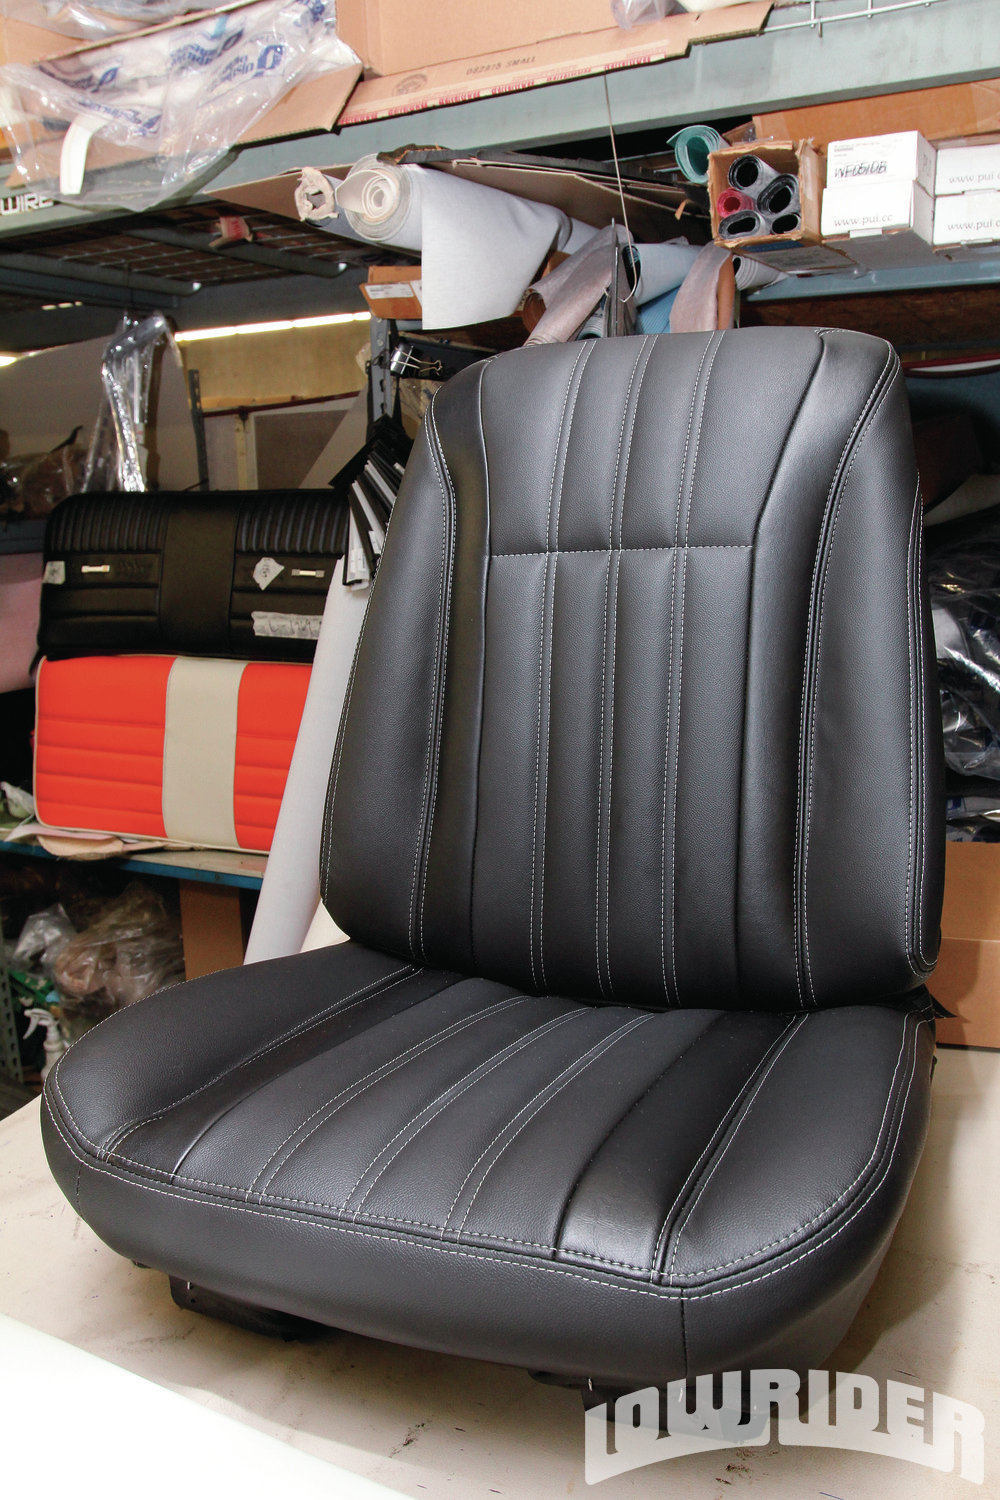 <strong>21</strong>. Here is a look at the completed front seat that the pros over at Distinctive Industries demonstrated a distinct look and style.